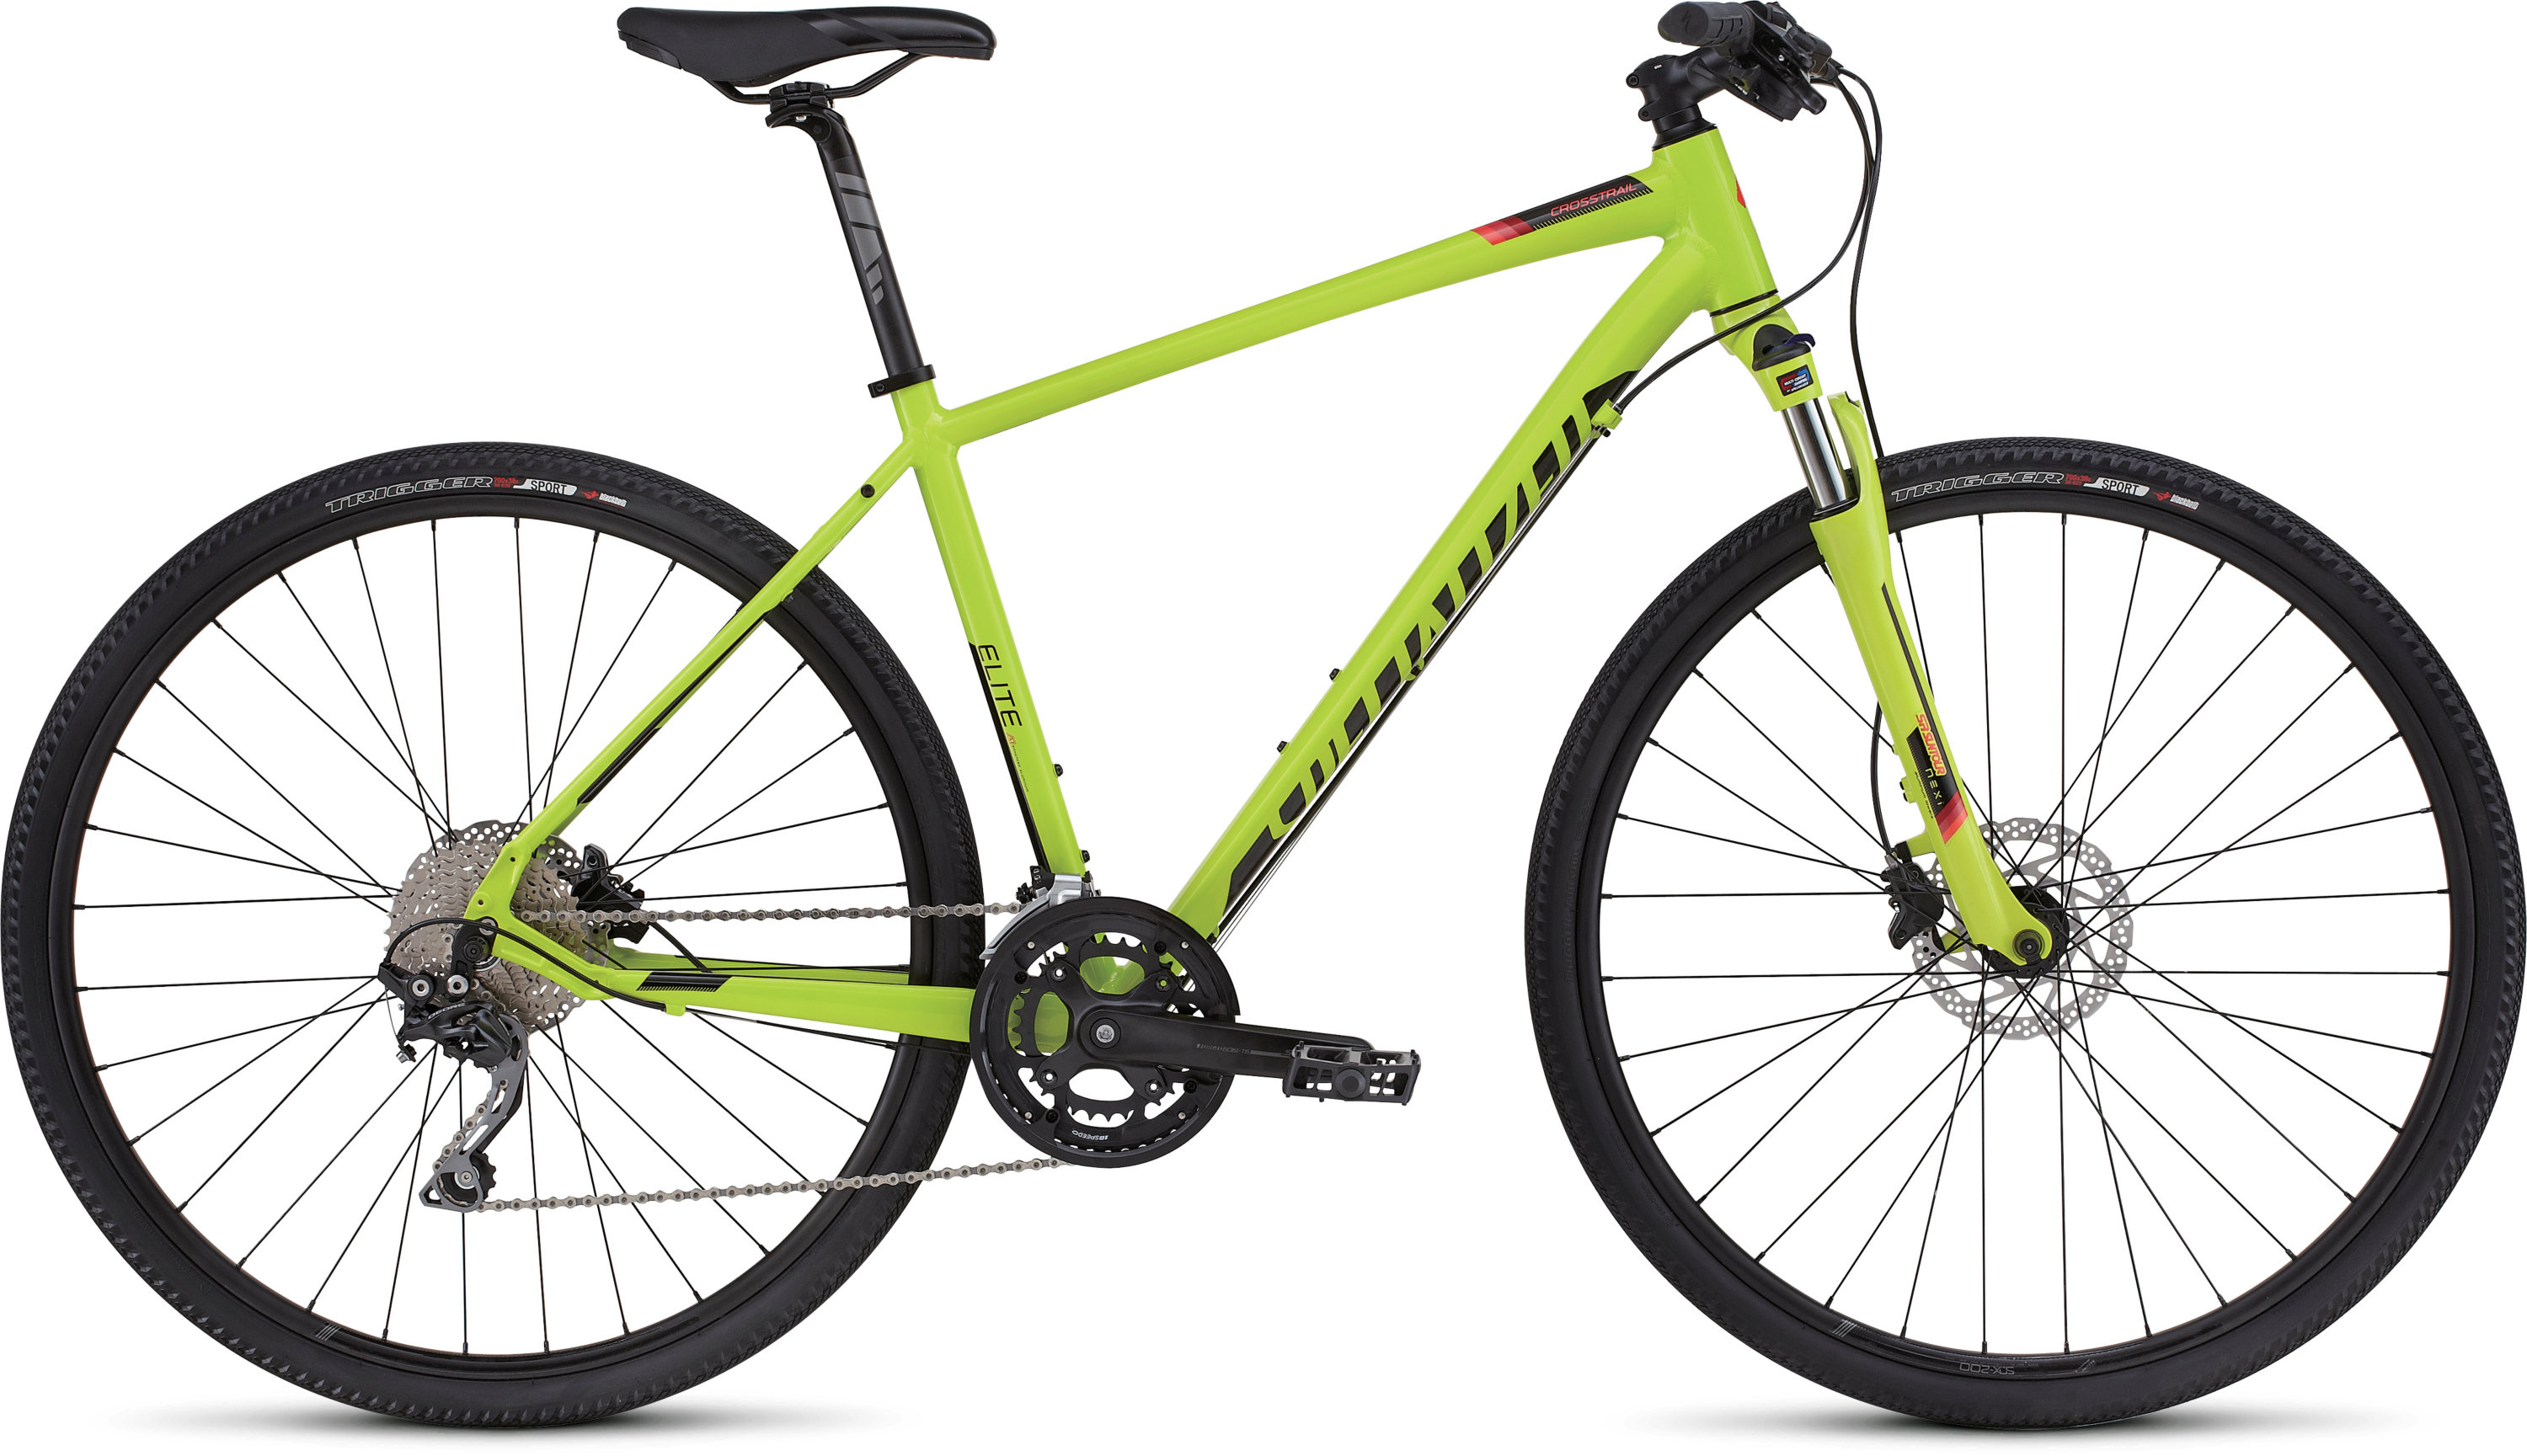 Specialized CT Elite Disc RH S - Specialized CT Elite Disc RH S